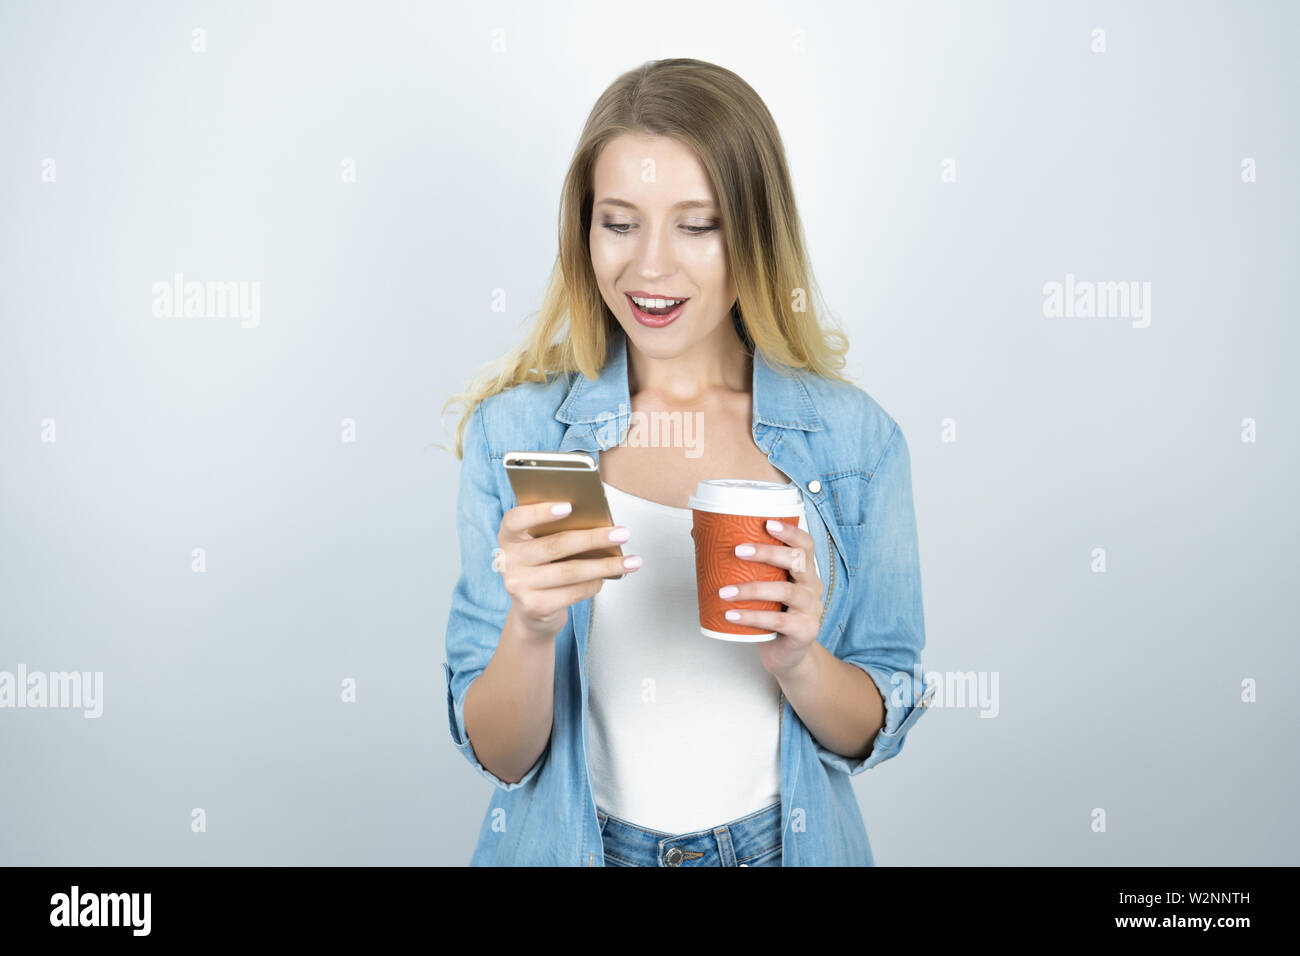 young happy blond woman holding smartphone in one hand and cup of coffee in another isolated white background - Stock Image